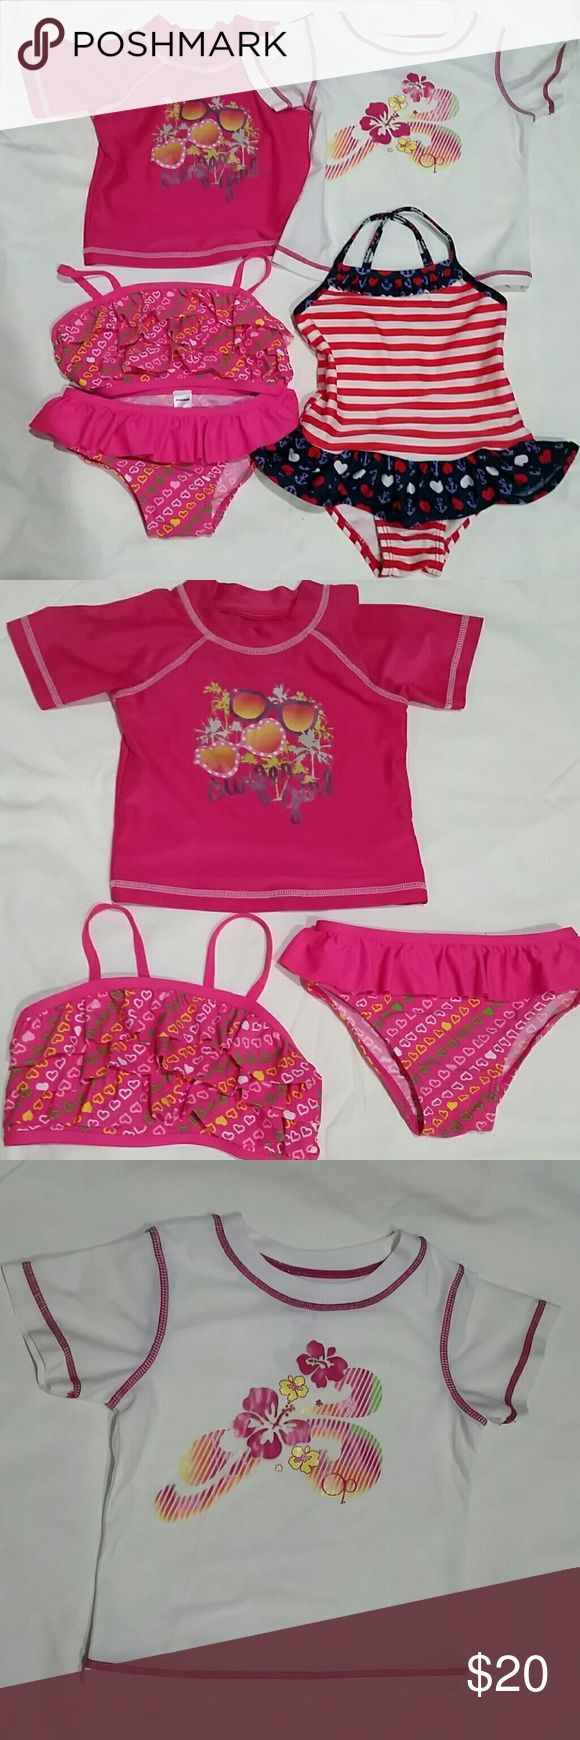 3T Swimwear Bundled Lot This listings includes 2 rash guards, a bikini, and a 1 piece. All pieces in this lot are size 3T. All are in excellent used condition. The brands included are Joe Boxer and OP.  The pink rash guard is Joe Boxer, and the white rash guard is Op. Both match well with the pink bikini.  The pink 2 piece has ruffles and hearts and is by Joe Boxer.   The 1 piece has red and white stripes and a navy ruffle, featuring hearts and anchors. Joe Boxer Swim